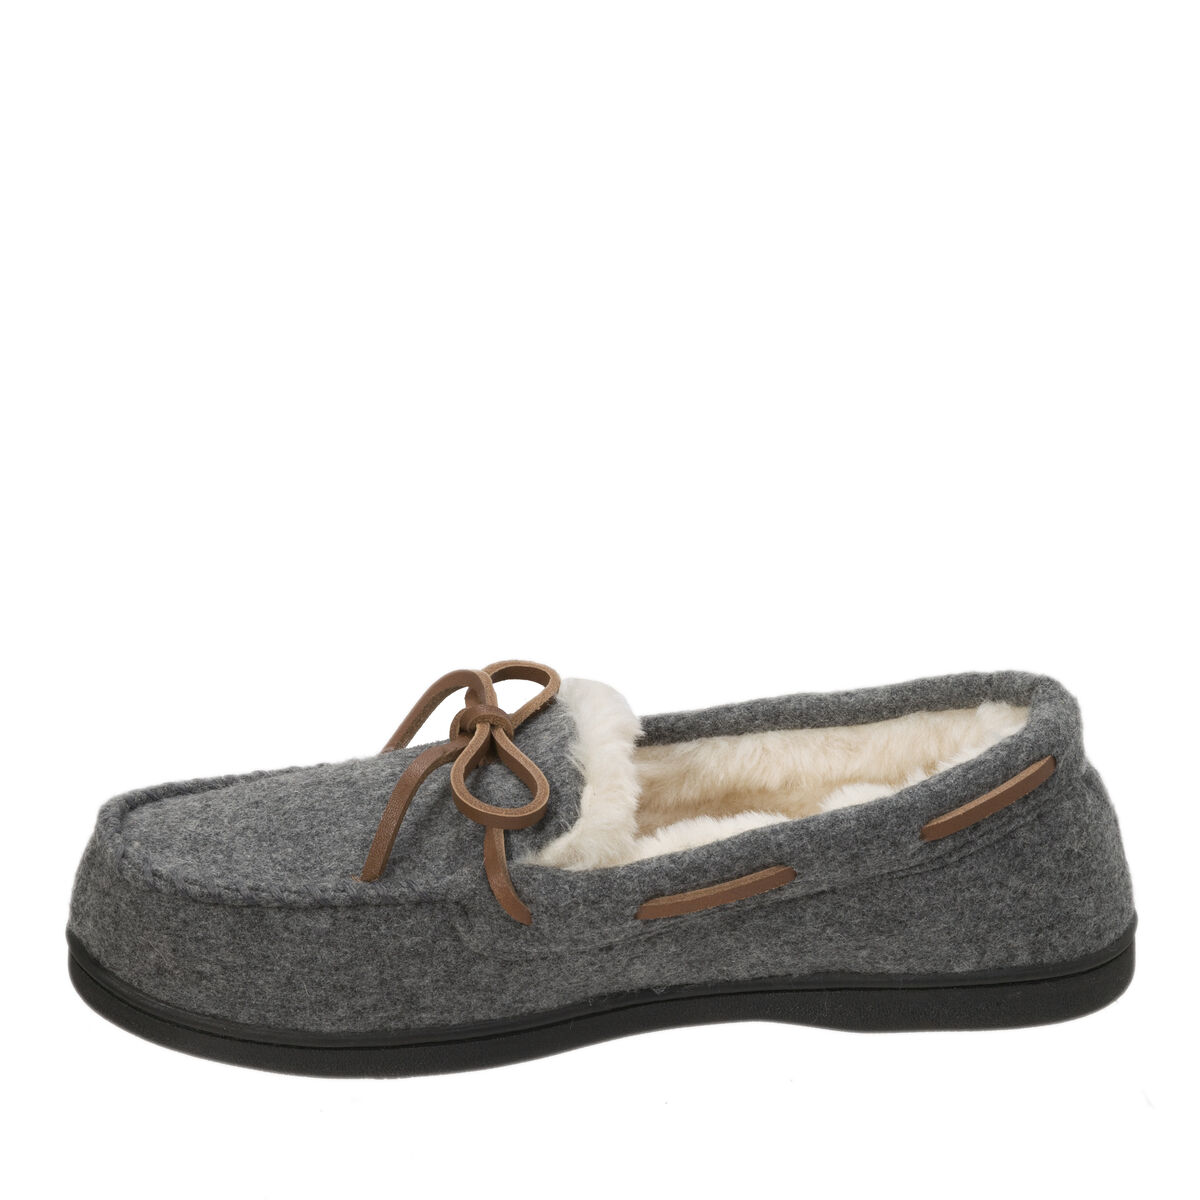 Women's Genuine Wool Moccasin with Tie